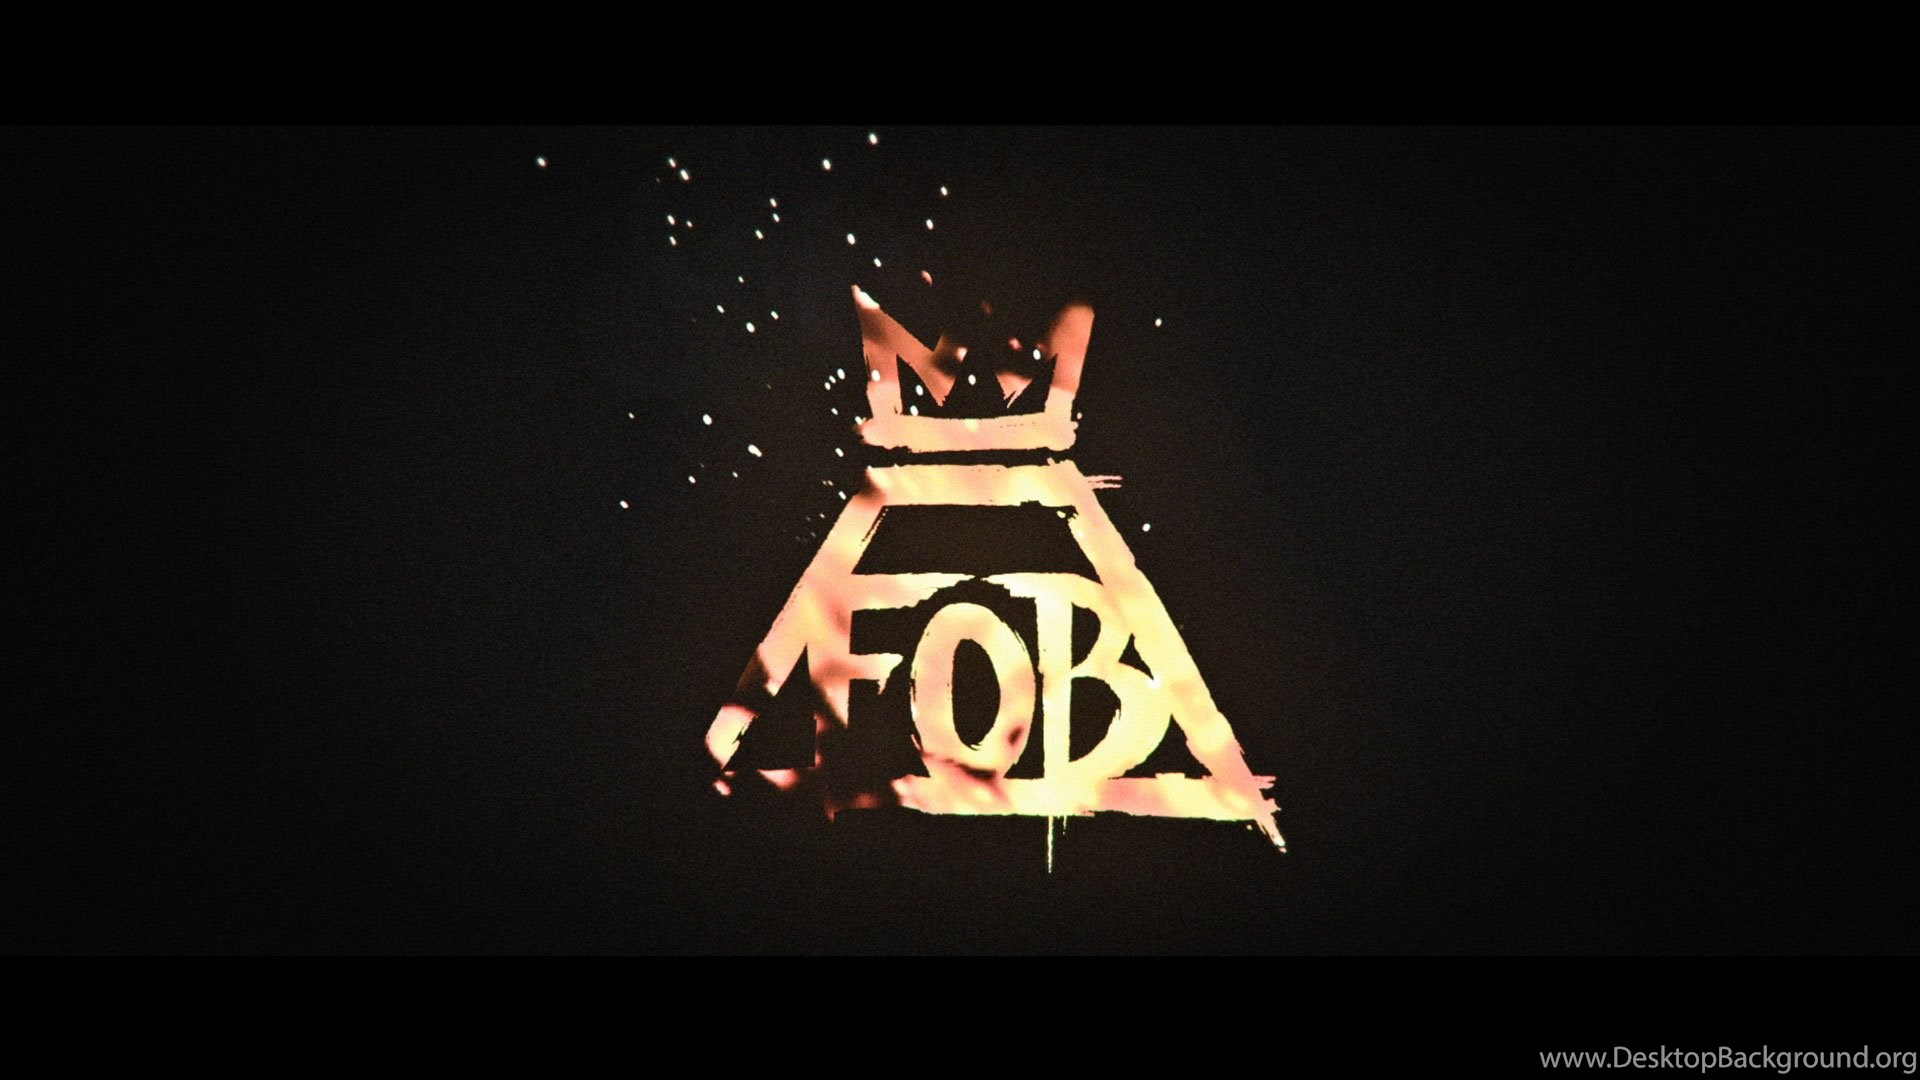 Fall Out Boy Wallpaper Iphone 5 Fall Out Boy Wallpapers Desktop Background